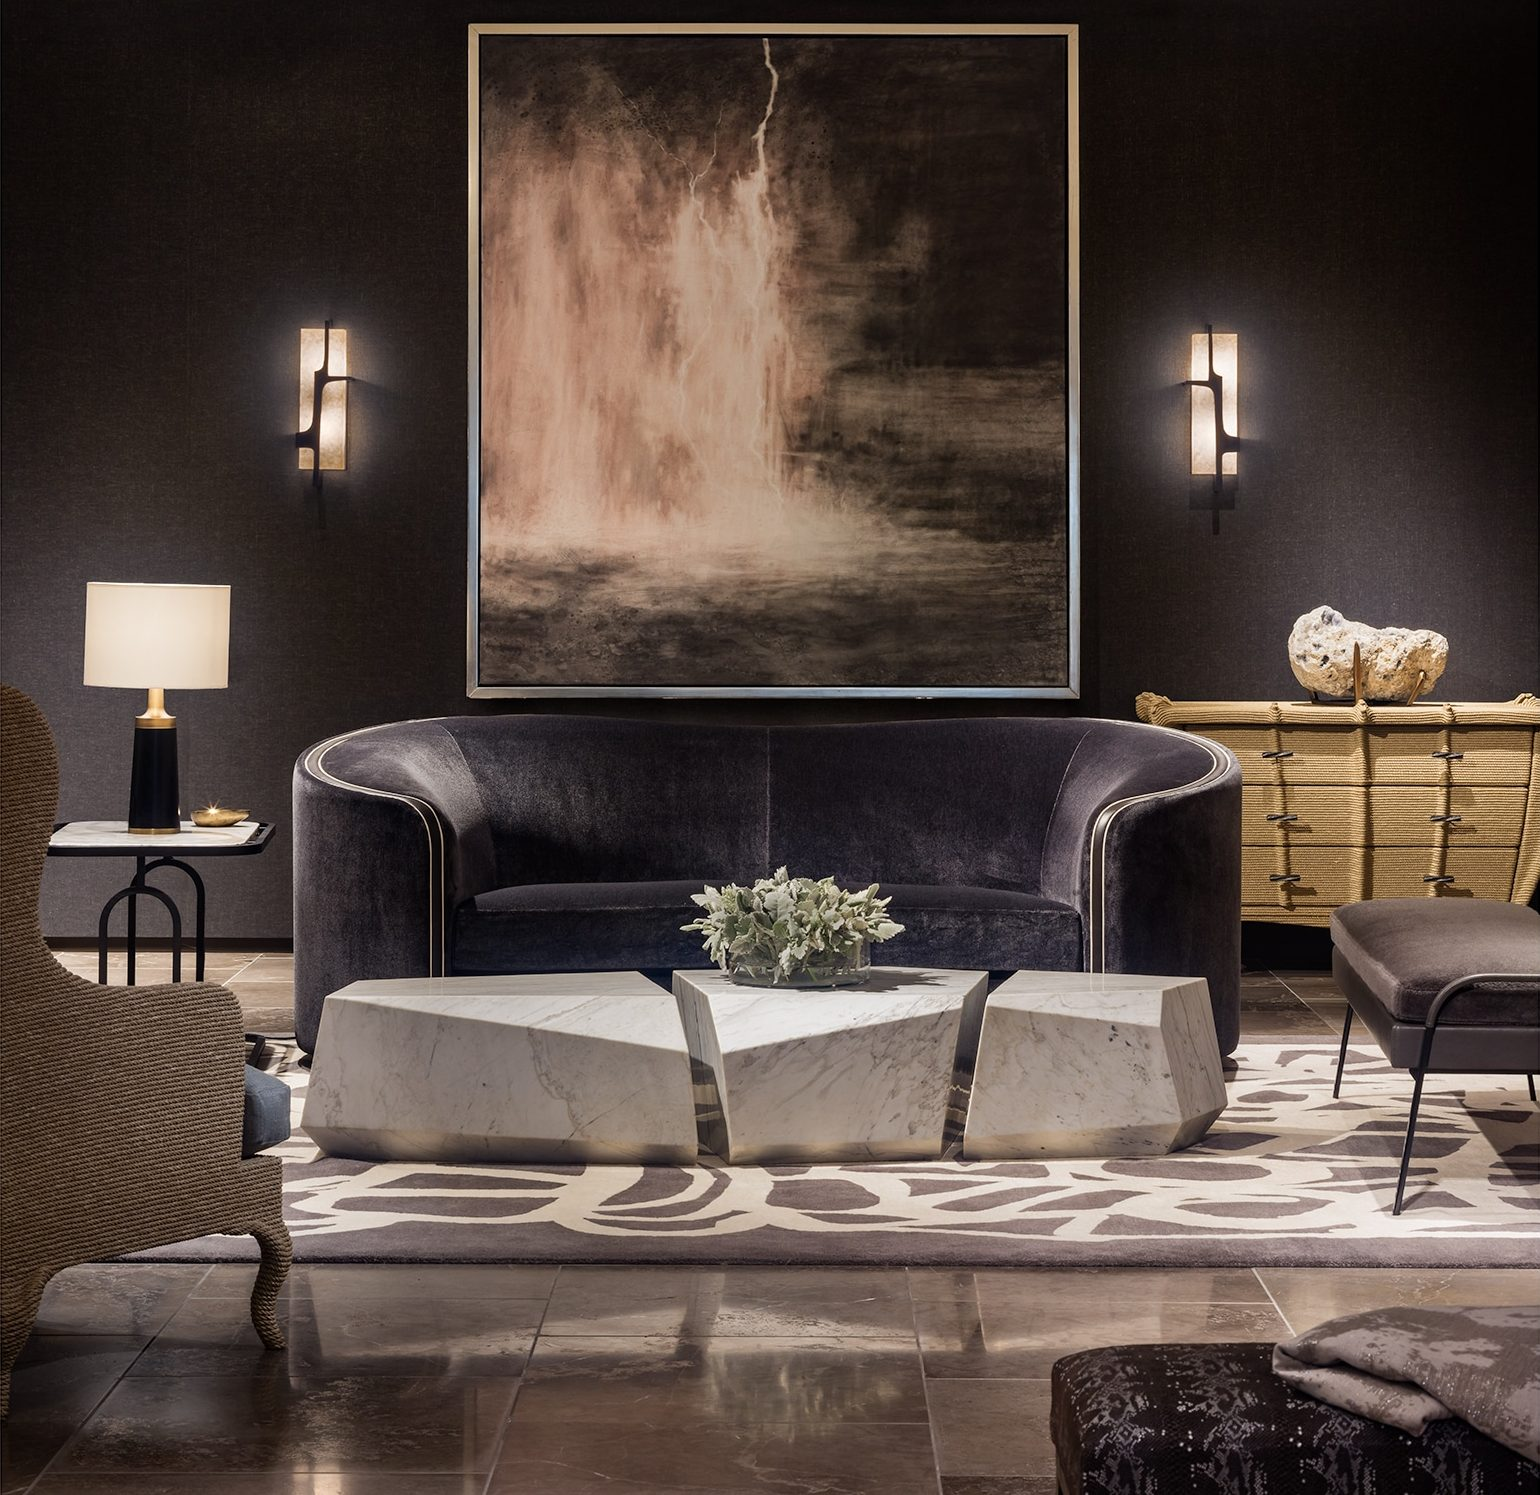 Women Empowerment - Holly Hunt Furniture - empowering women - luxury furniture - luxury lighting - highend furniture - highend lighting - cocktail tables - sofas - floor lamps - wall mirrors - holly hunt showrooms